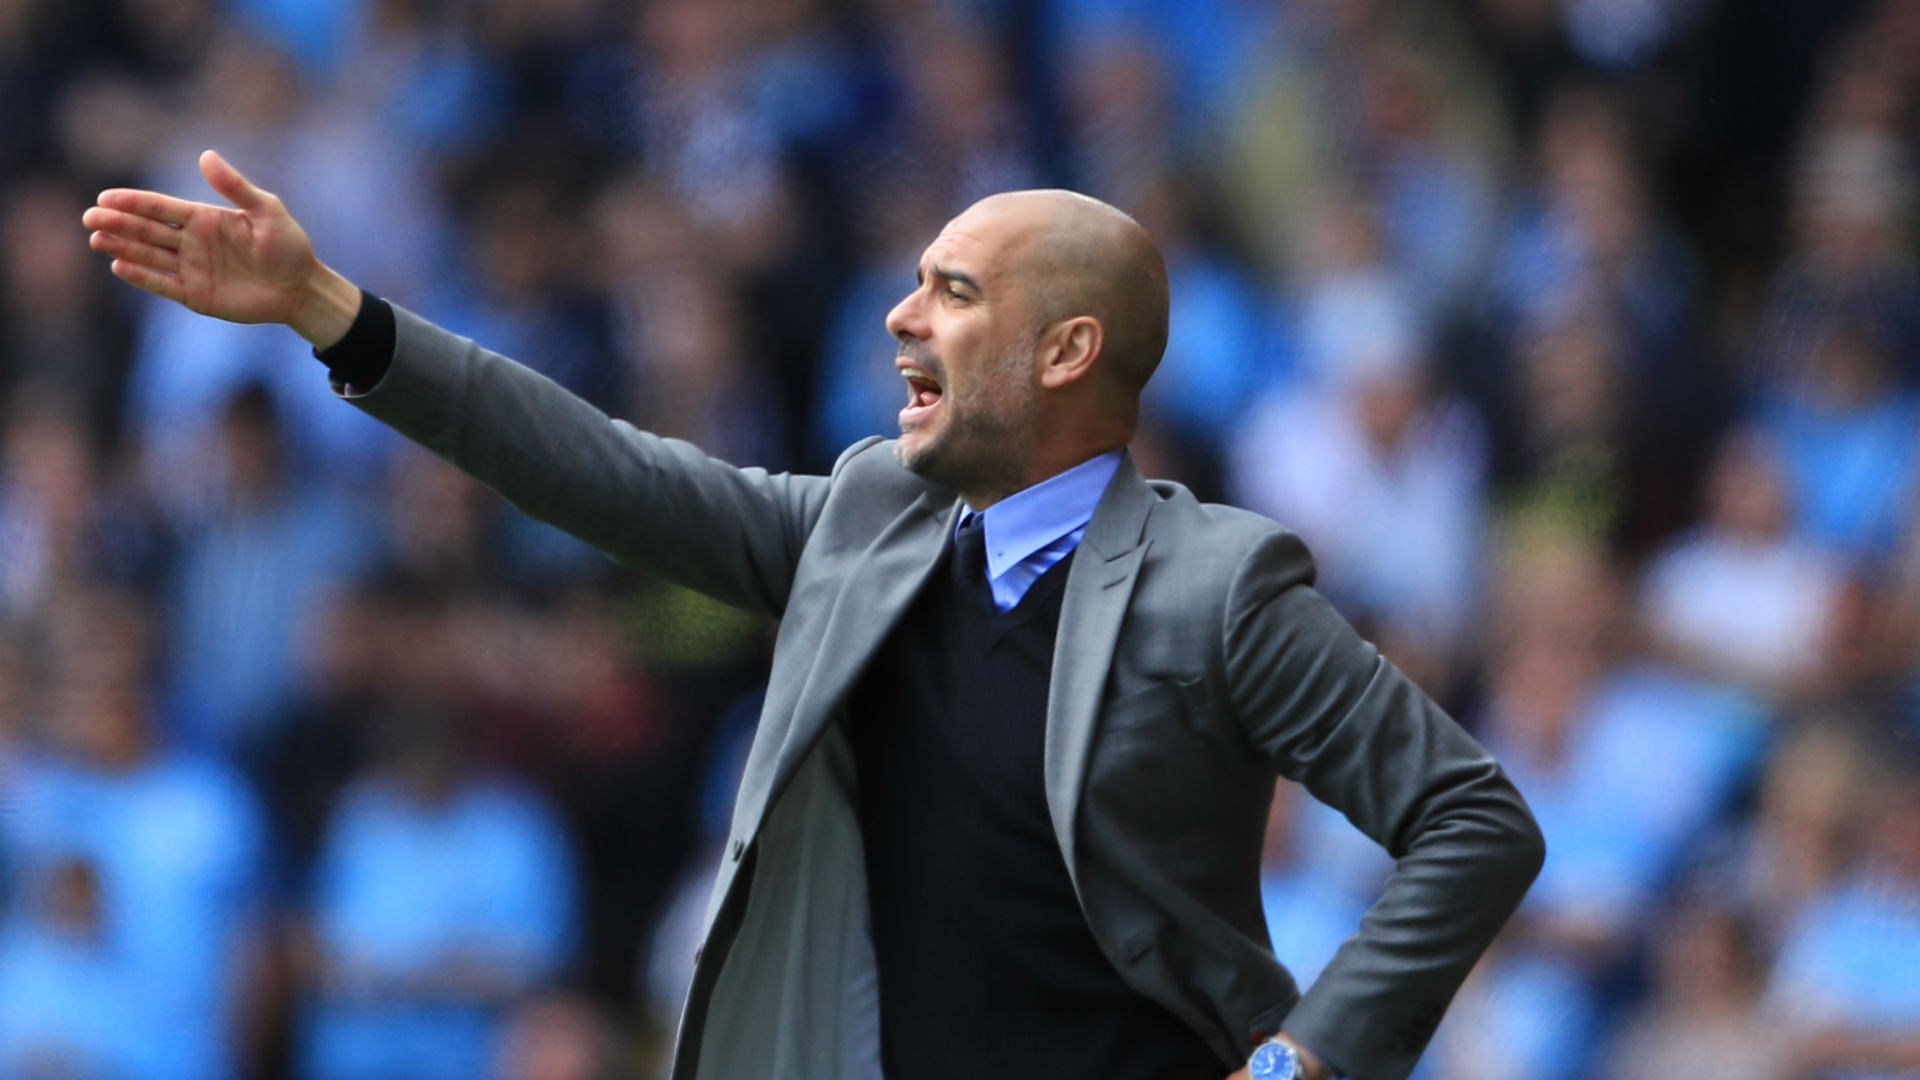 The current Manchester United manager believes that himself and Guardiola were lucky to have been part of a period in European football that by the look of things are not set to return too soon.